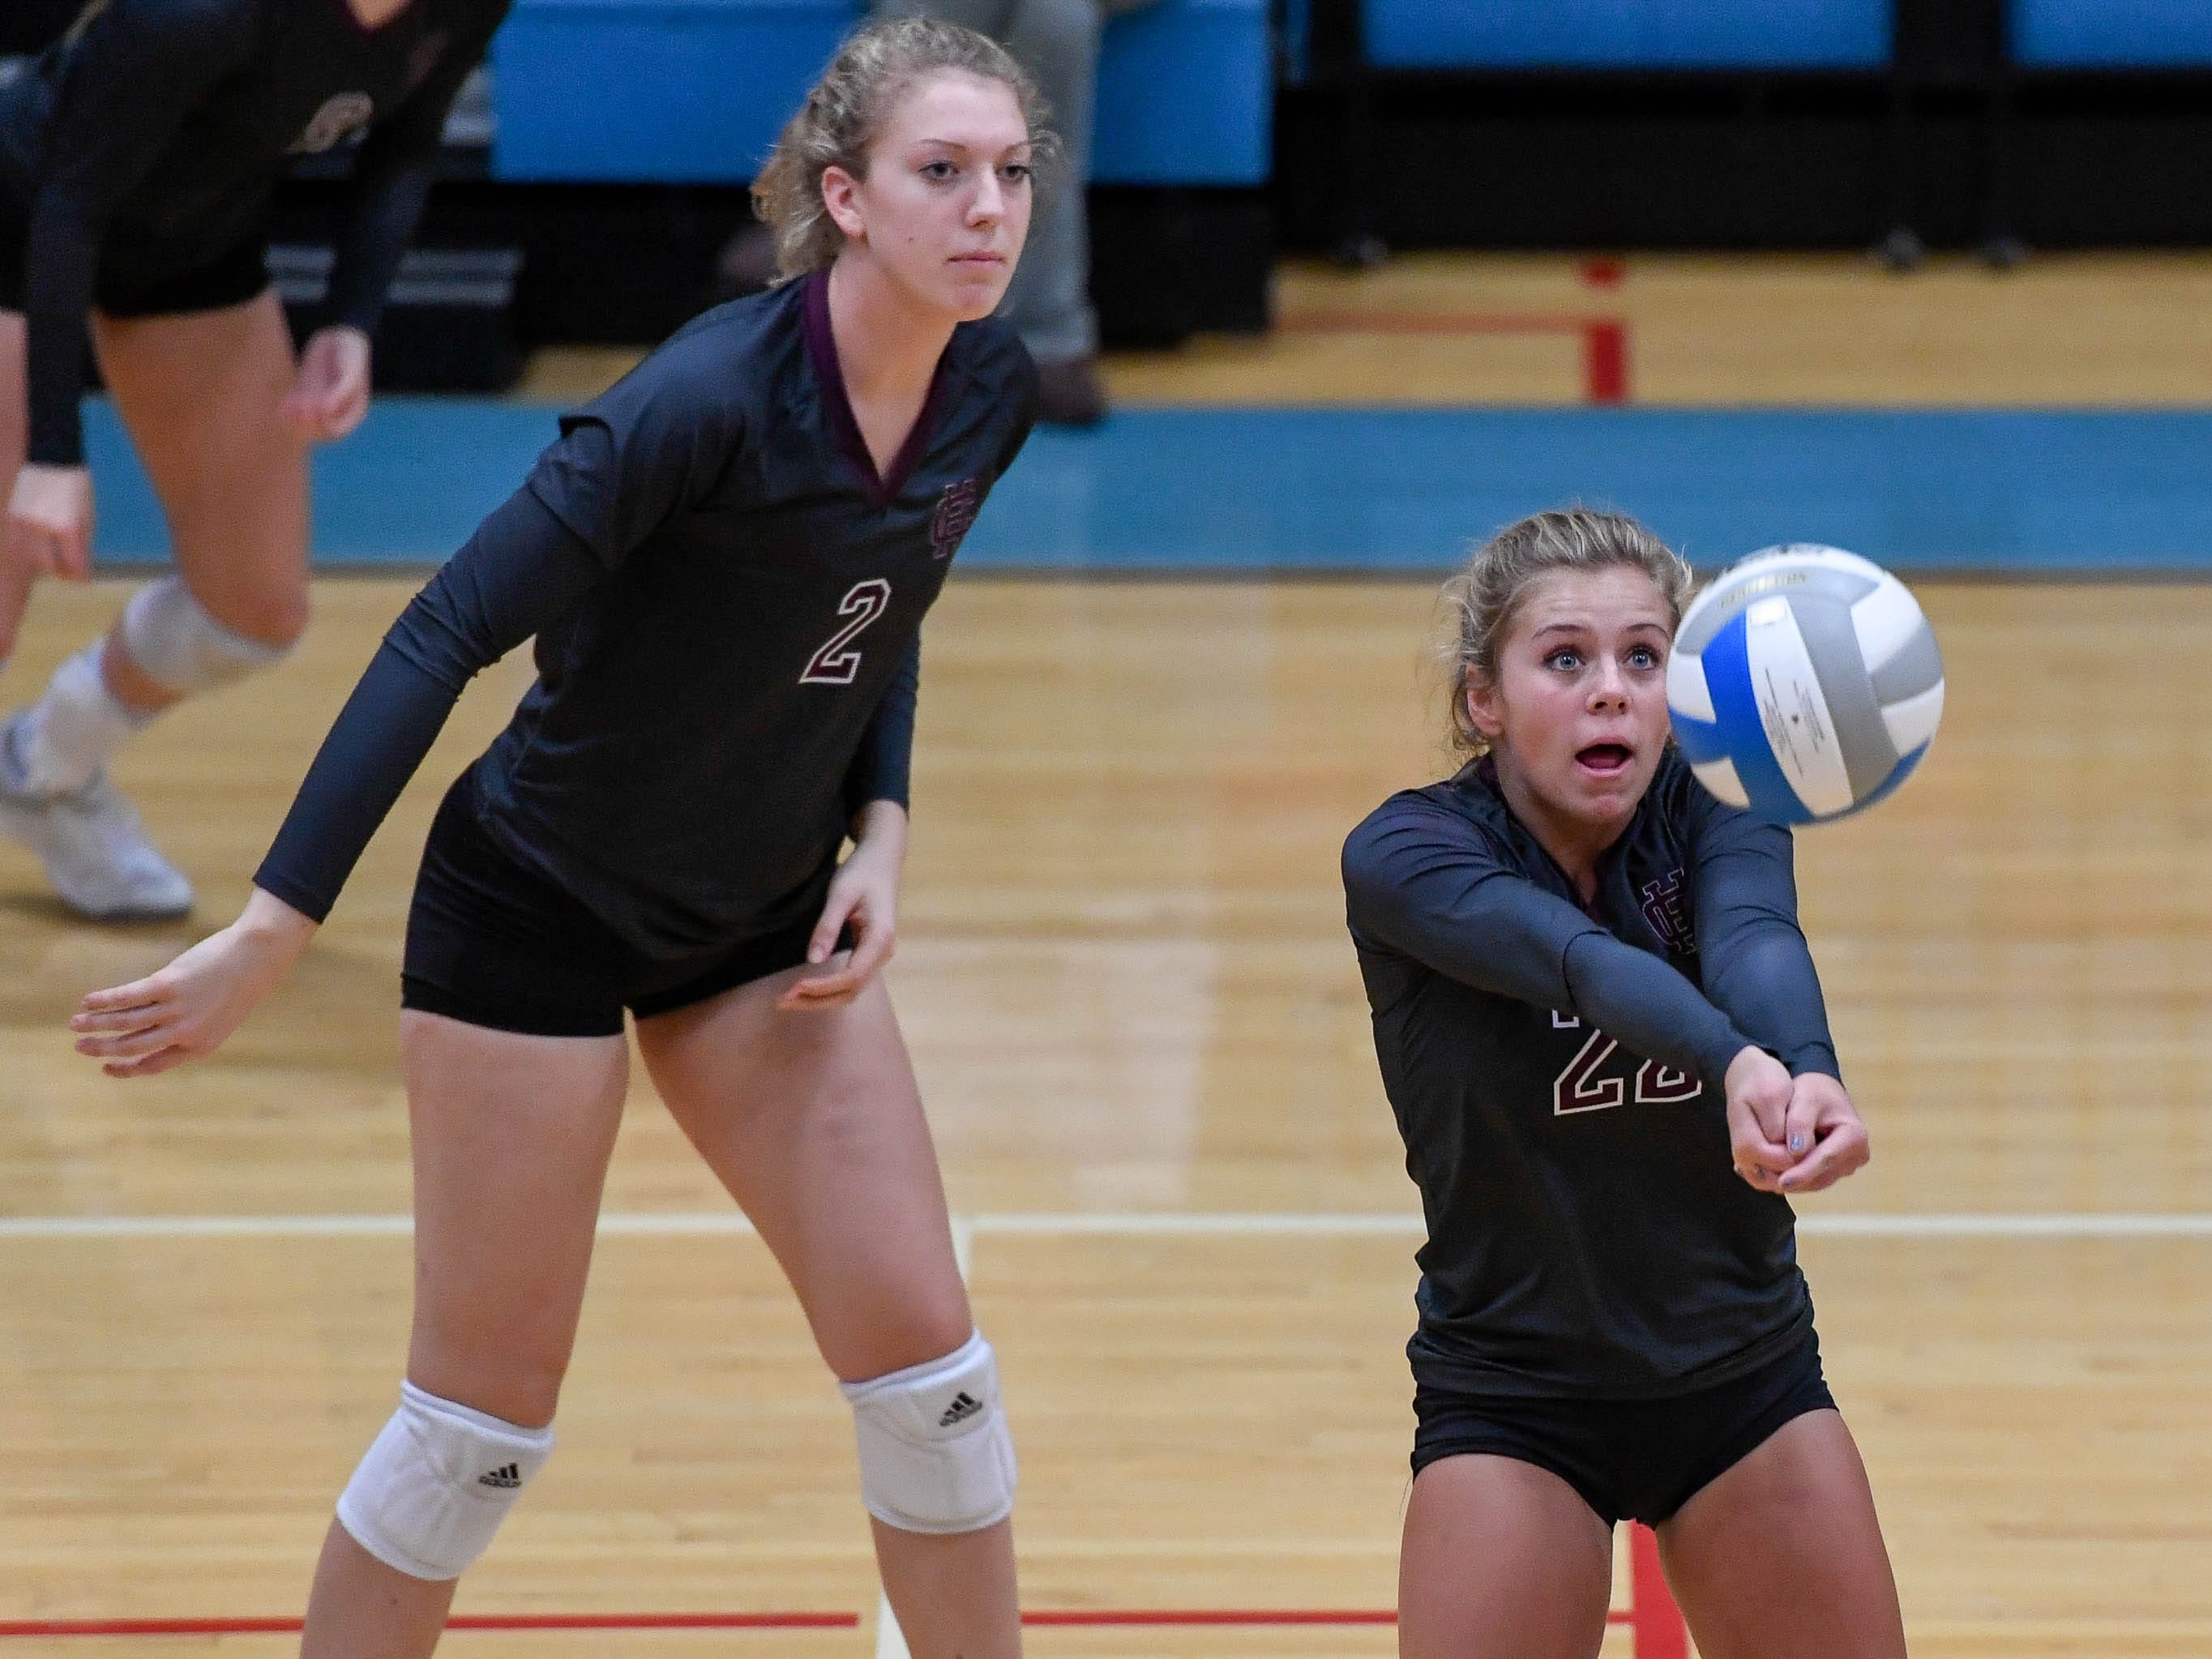 Henderson's Avery Marshall (22) sets the ball as the Henderson County Lady Colonels play the Webster County Lady Trojans in the District Volleyball Tournament championship match in Morganfield, Tuesday, October 9, 2018.